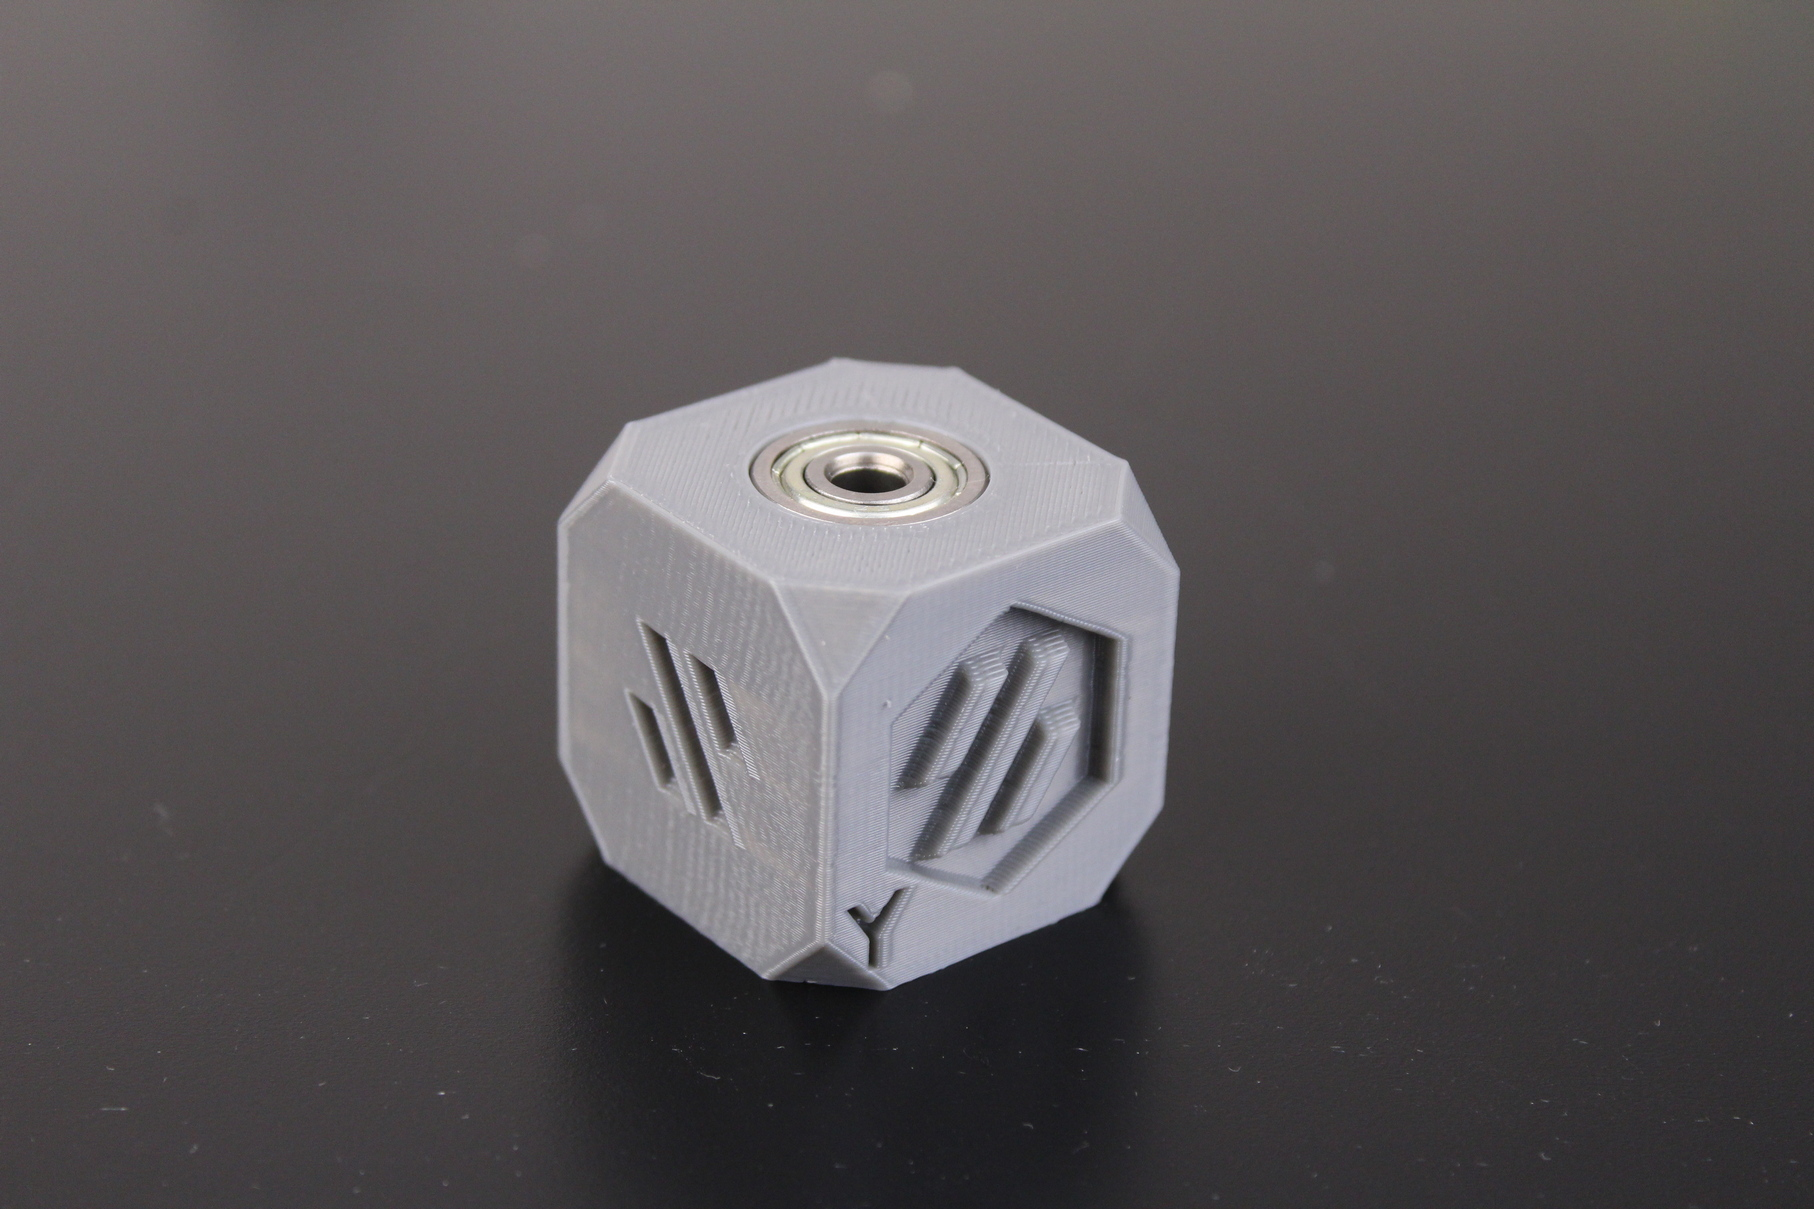 Voron-Cube-printed-on-the-Sermoon-D1-in-PLA-6